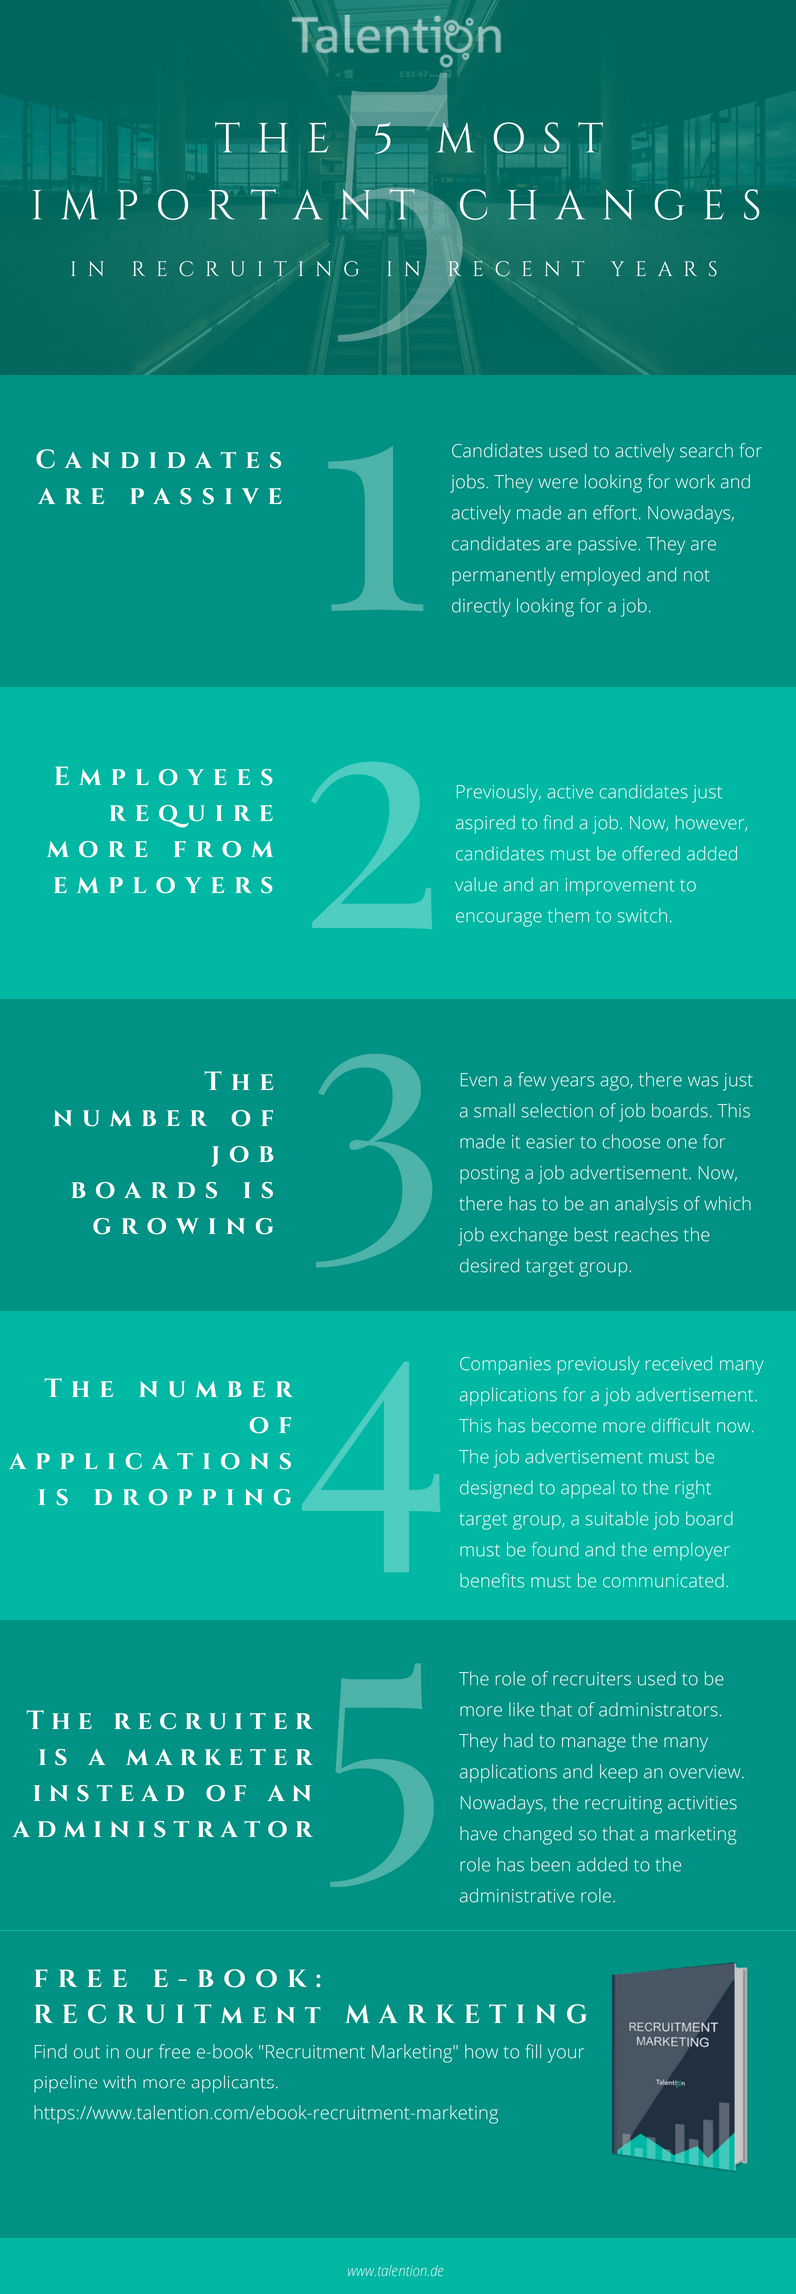 The 5 most important changes in recruiting in recent years